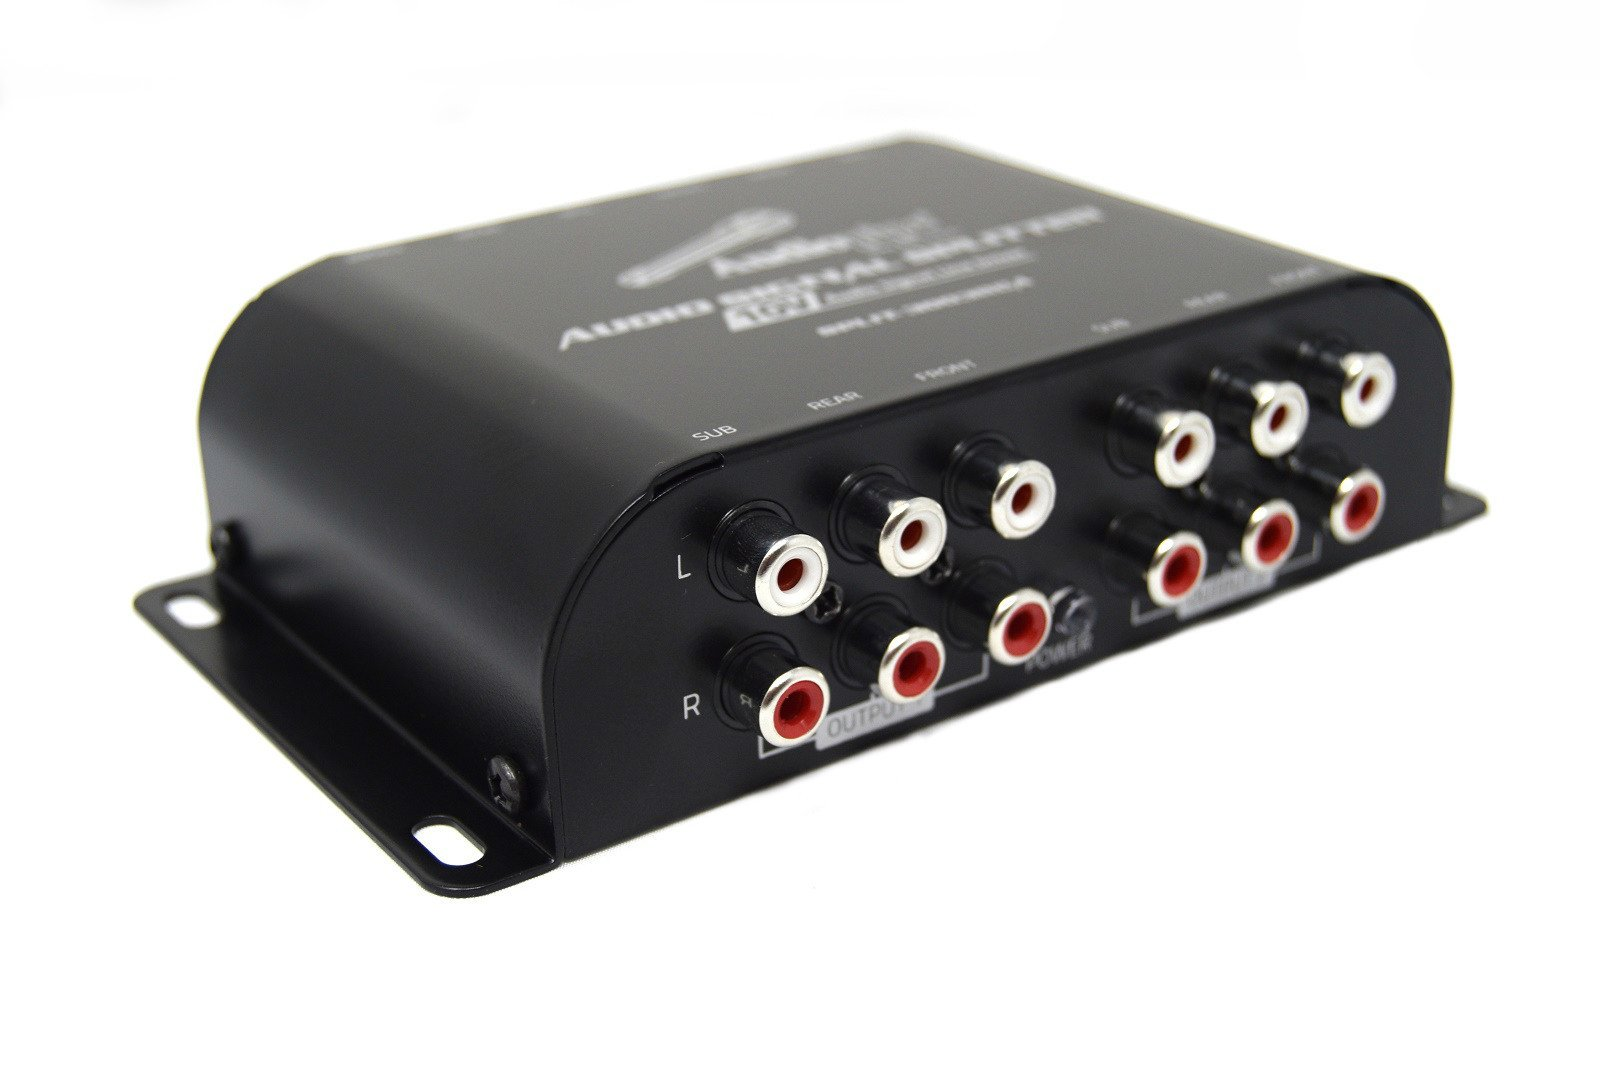 Audiopipe Multi-Audio Amplifier 3 RCA outputs w/bulit in 10V line driver by Audiopipe